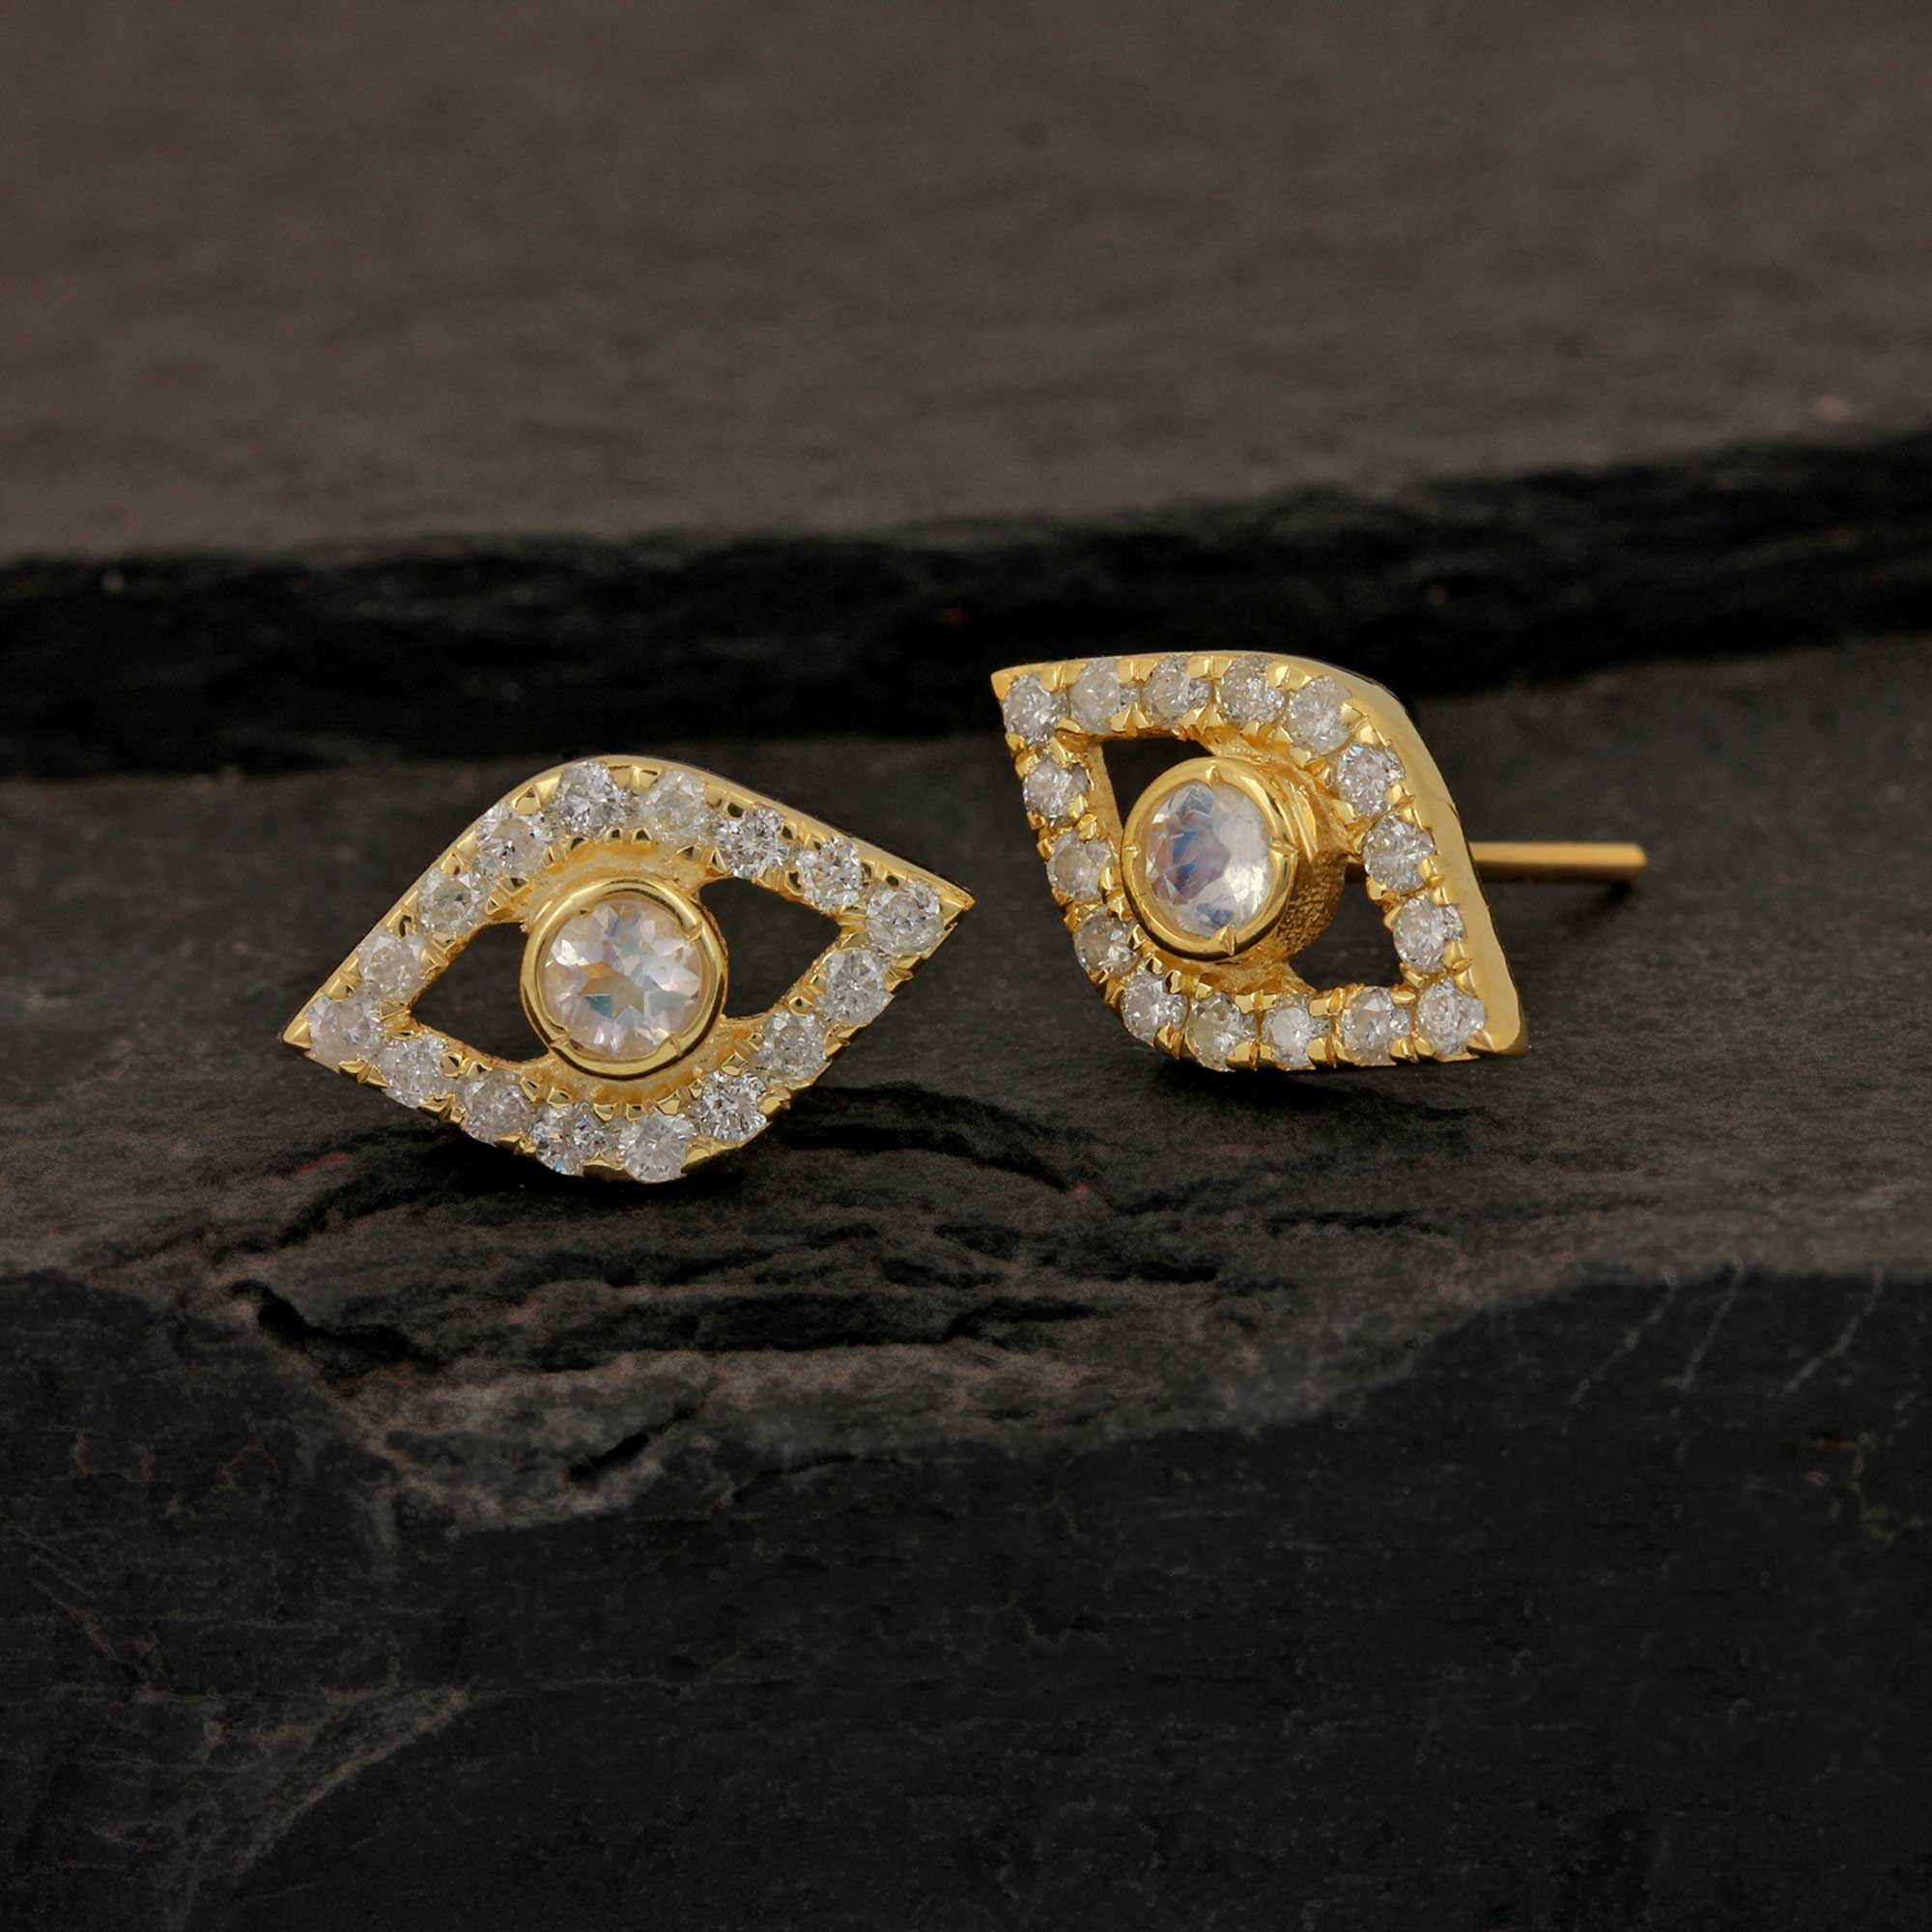 14k Solid Gold Diamond Natural Moonstone Solitaire Evil Stud Earrings